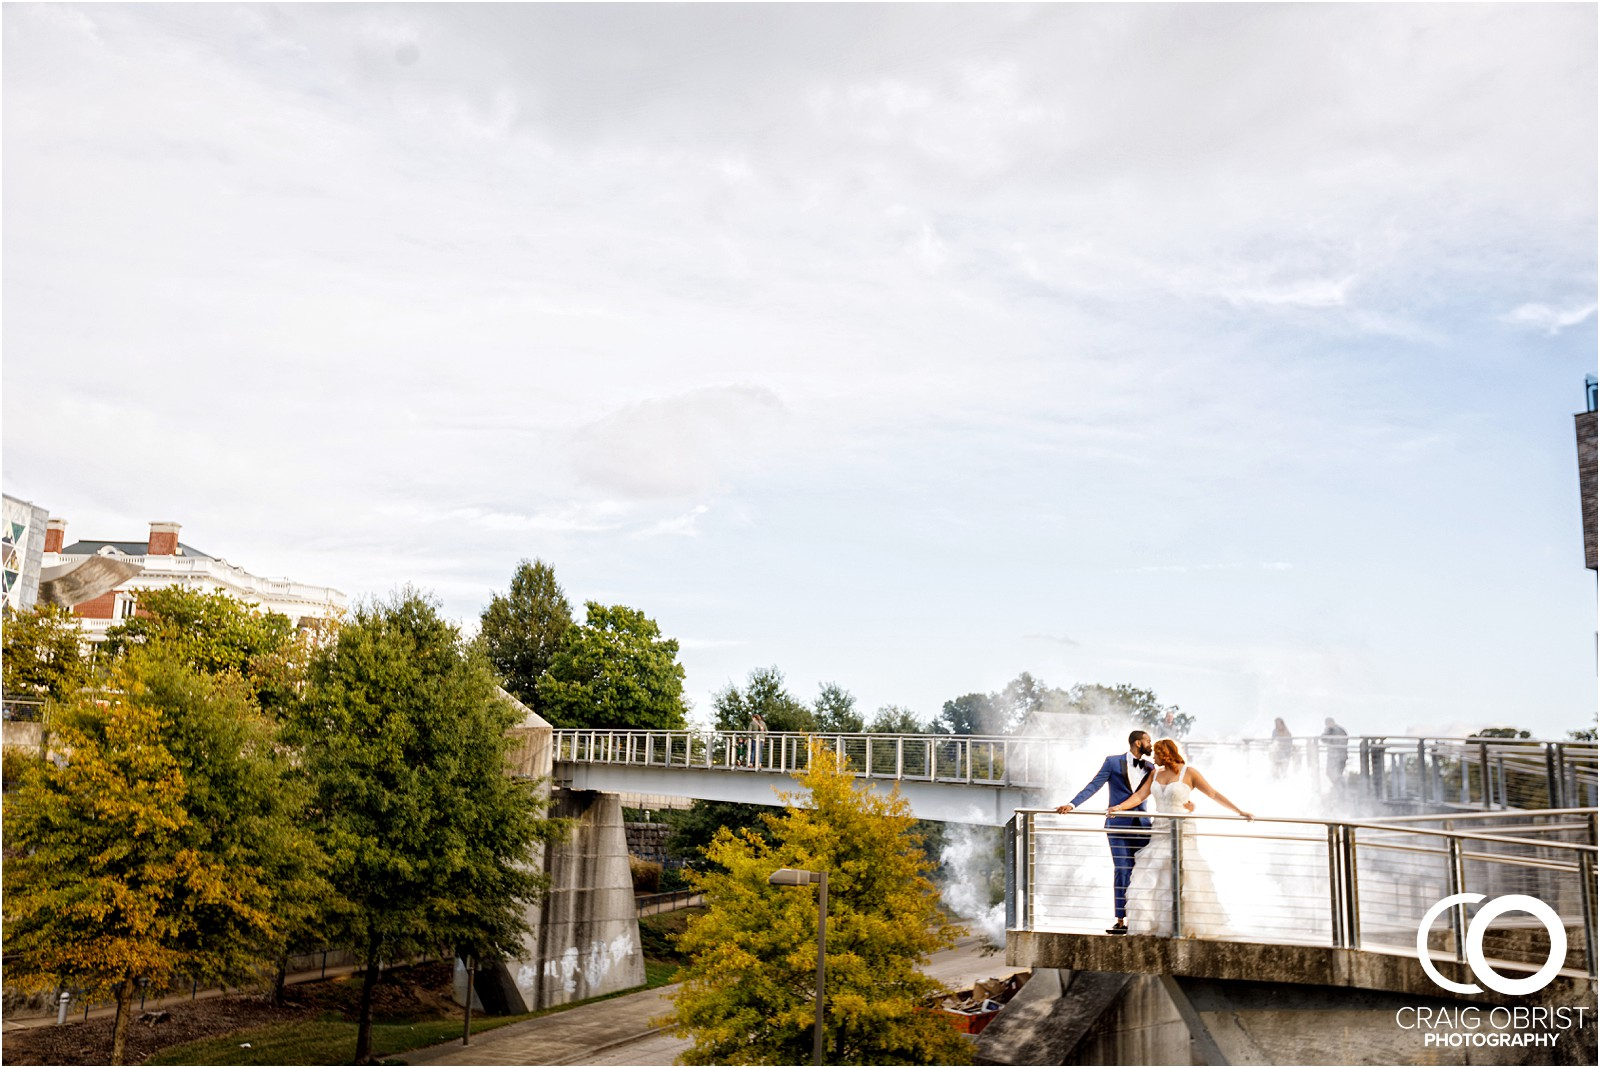 Stratton Hall Chattanooga Walnut Street Bridge Wedding Portraits_0048.jpg